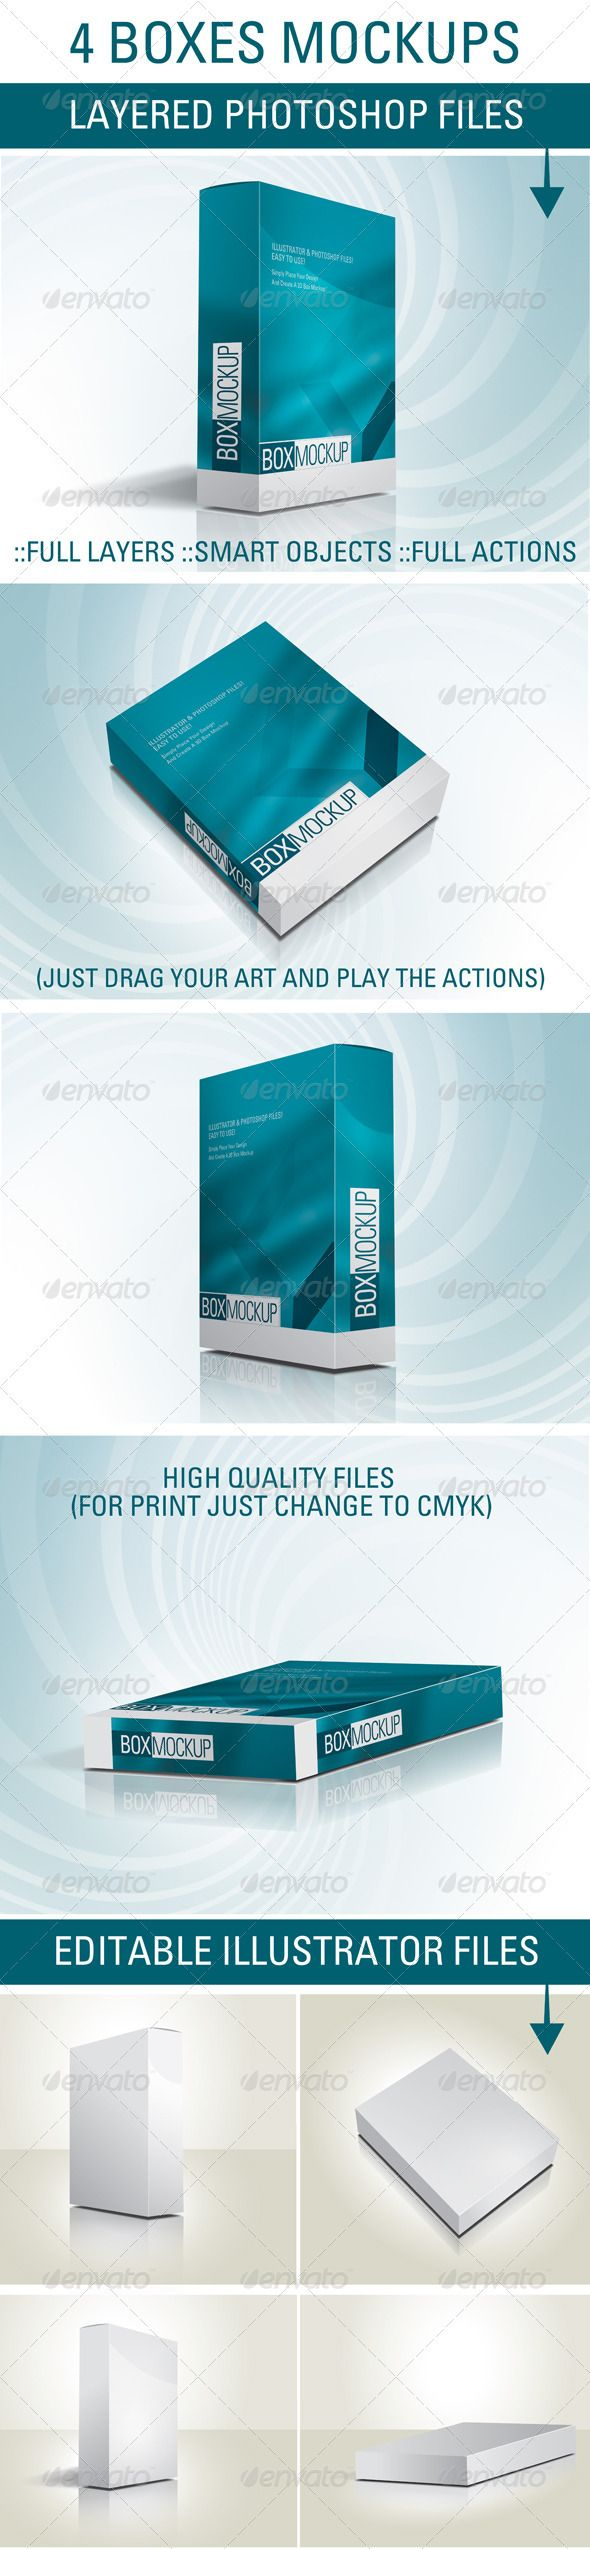 4 Box Mockup Files and Actions  #GraphicRiver         3D 4 Box Mockups Files in Both Illustrator and Photoshop Formats The Illustrator file are in CS4 and CS5 Formats including easily editable vector elements.  	 The Photoshop files are high quality files suitable for printing (approx. A4 size and 300dpi) containing easily editable smart objects and full actions and Instructions file for each box angle (front, back, top and side) Simply place your art and play the action     Created…